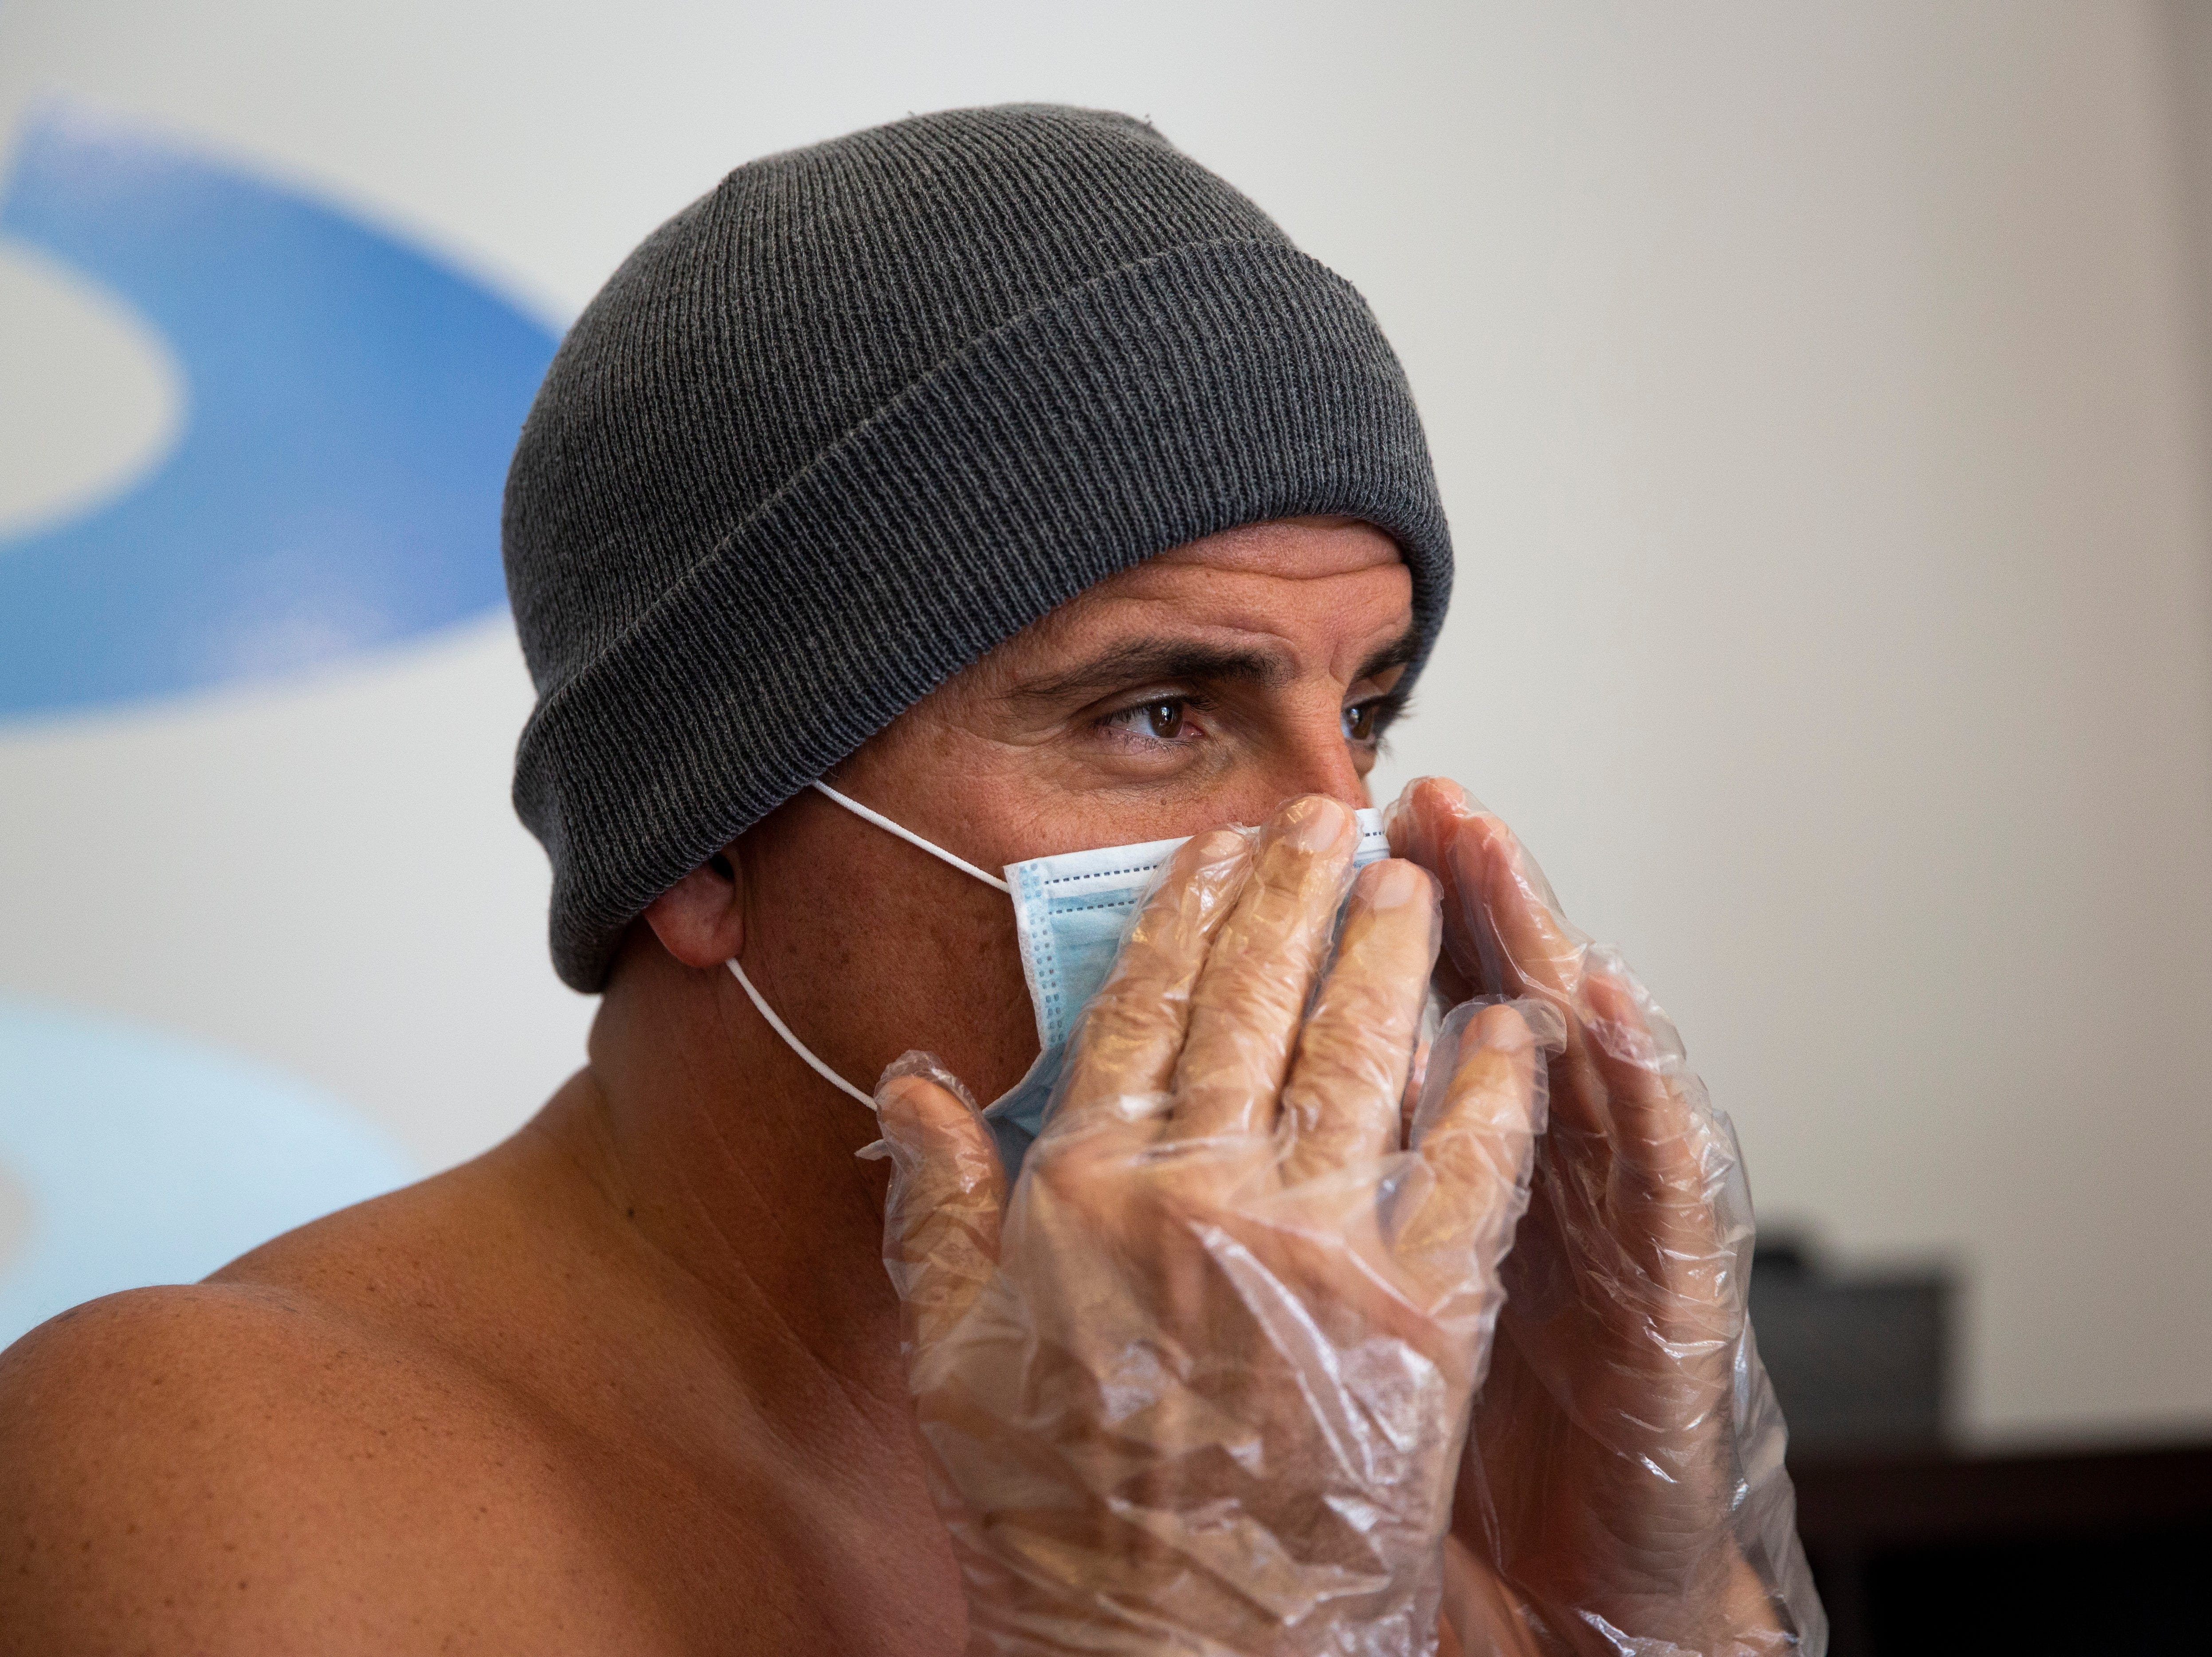 Patrick Dearborn adjusts his mask before receiving whole body cryotherapy in the single room chamber on Thursday, Nov. 8, 2018, at US Cryotherapy in North Naples. Dearborn started receiving cryotherapy in August and comes in about five times a week.